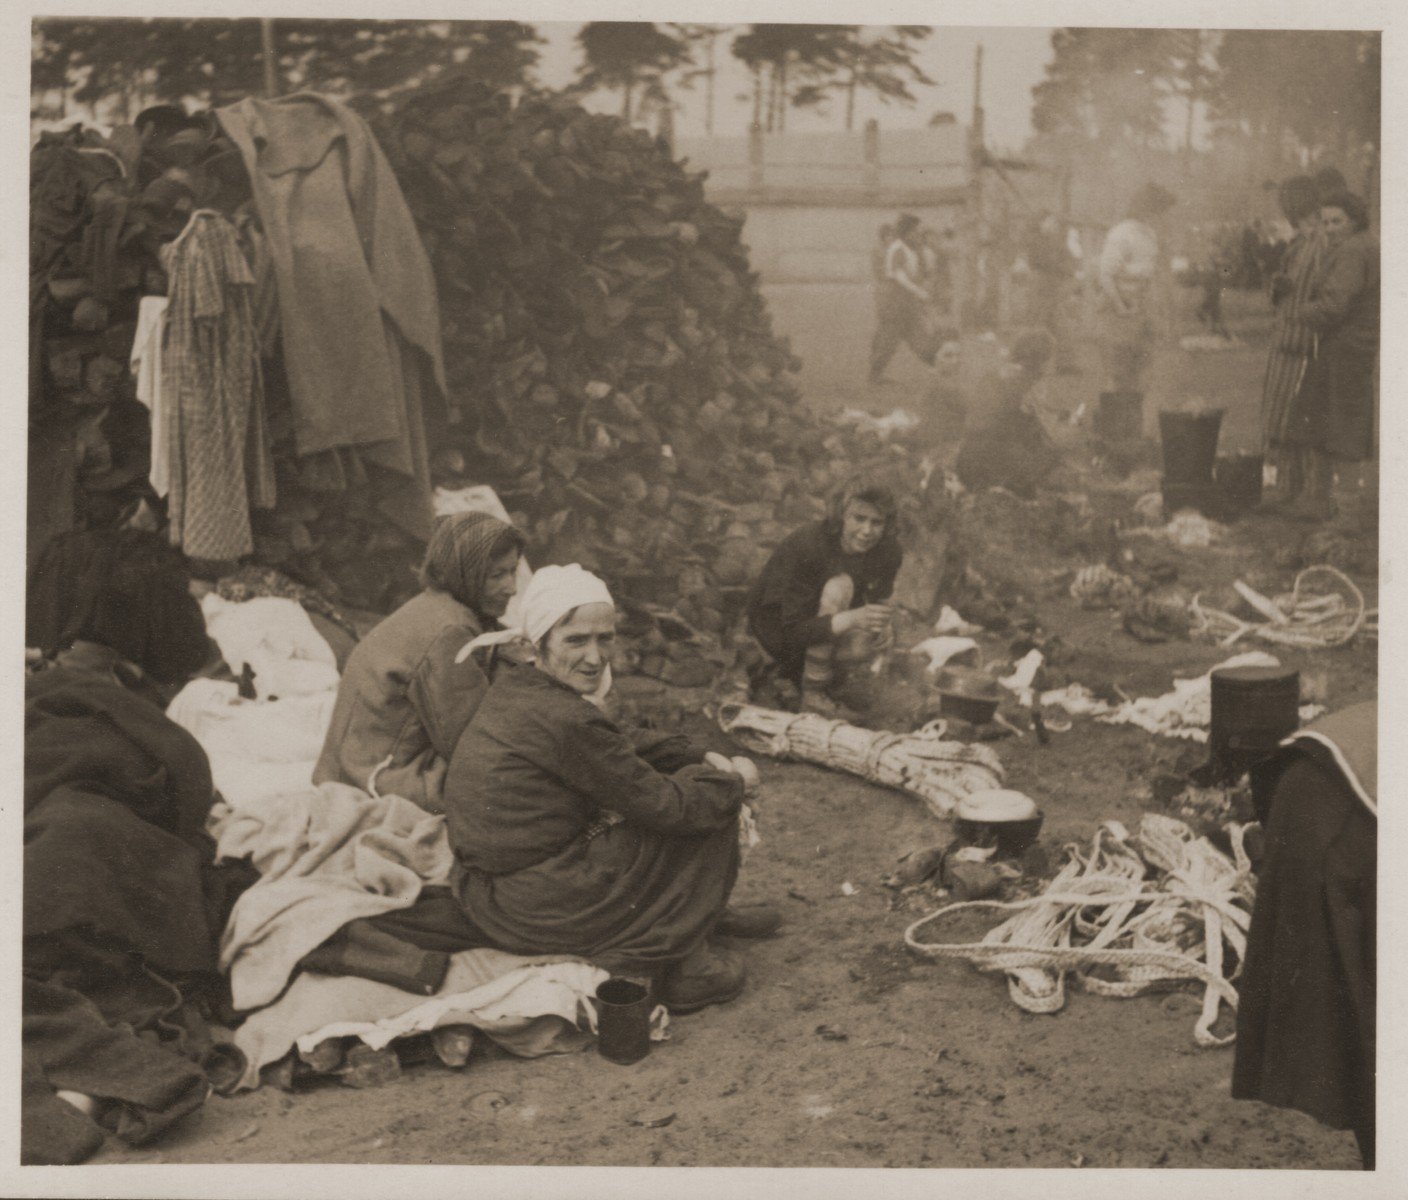 Survivors in Bergen-Belsen cook over an open fire next to a mound of shoes.